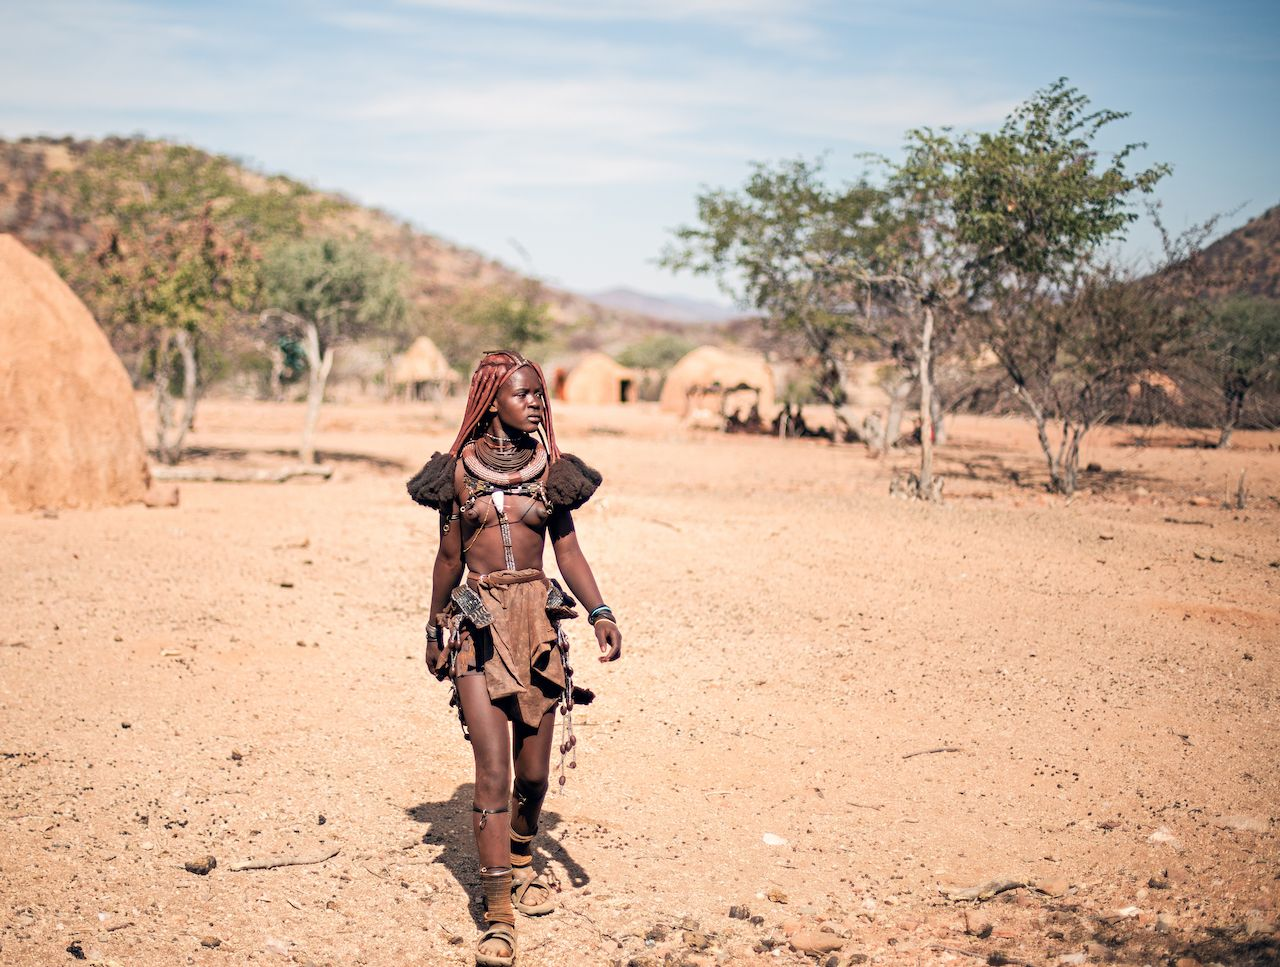 Discover the unique Himba people of Namibia, Africa